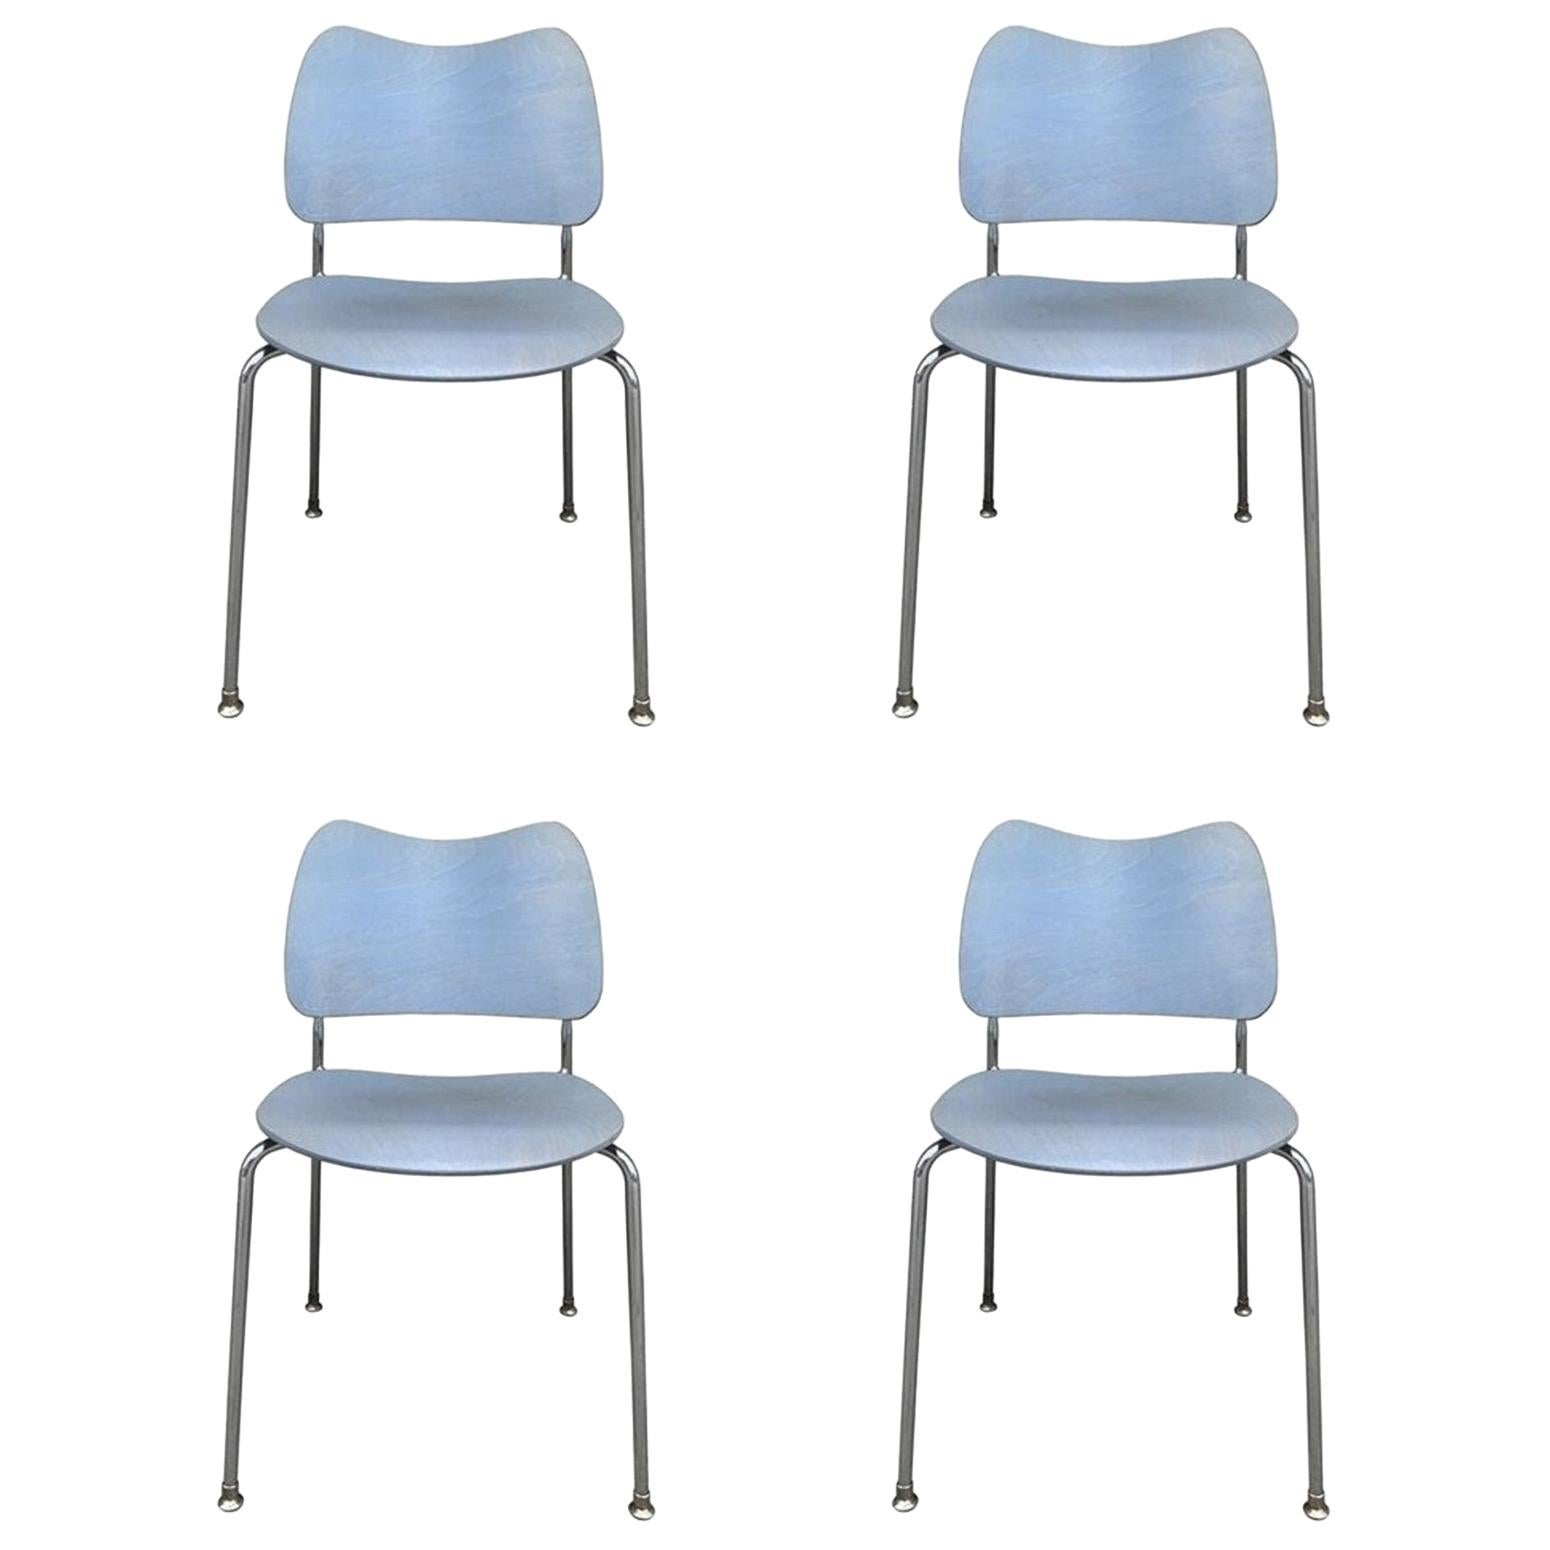 Set of 4 Stacking Chairs Made in Sweden by Lammhults Mobel